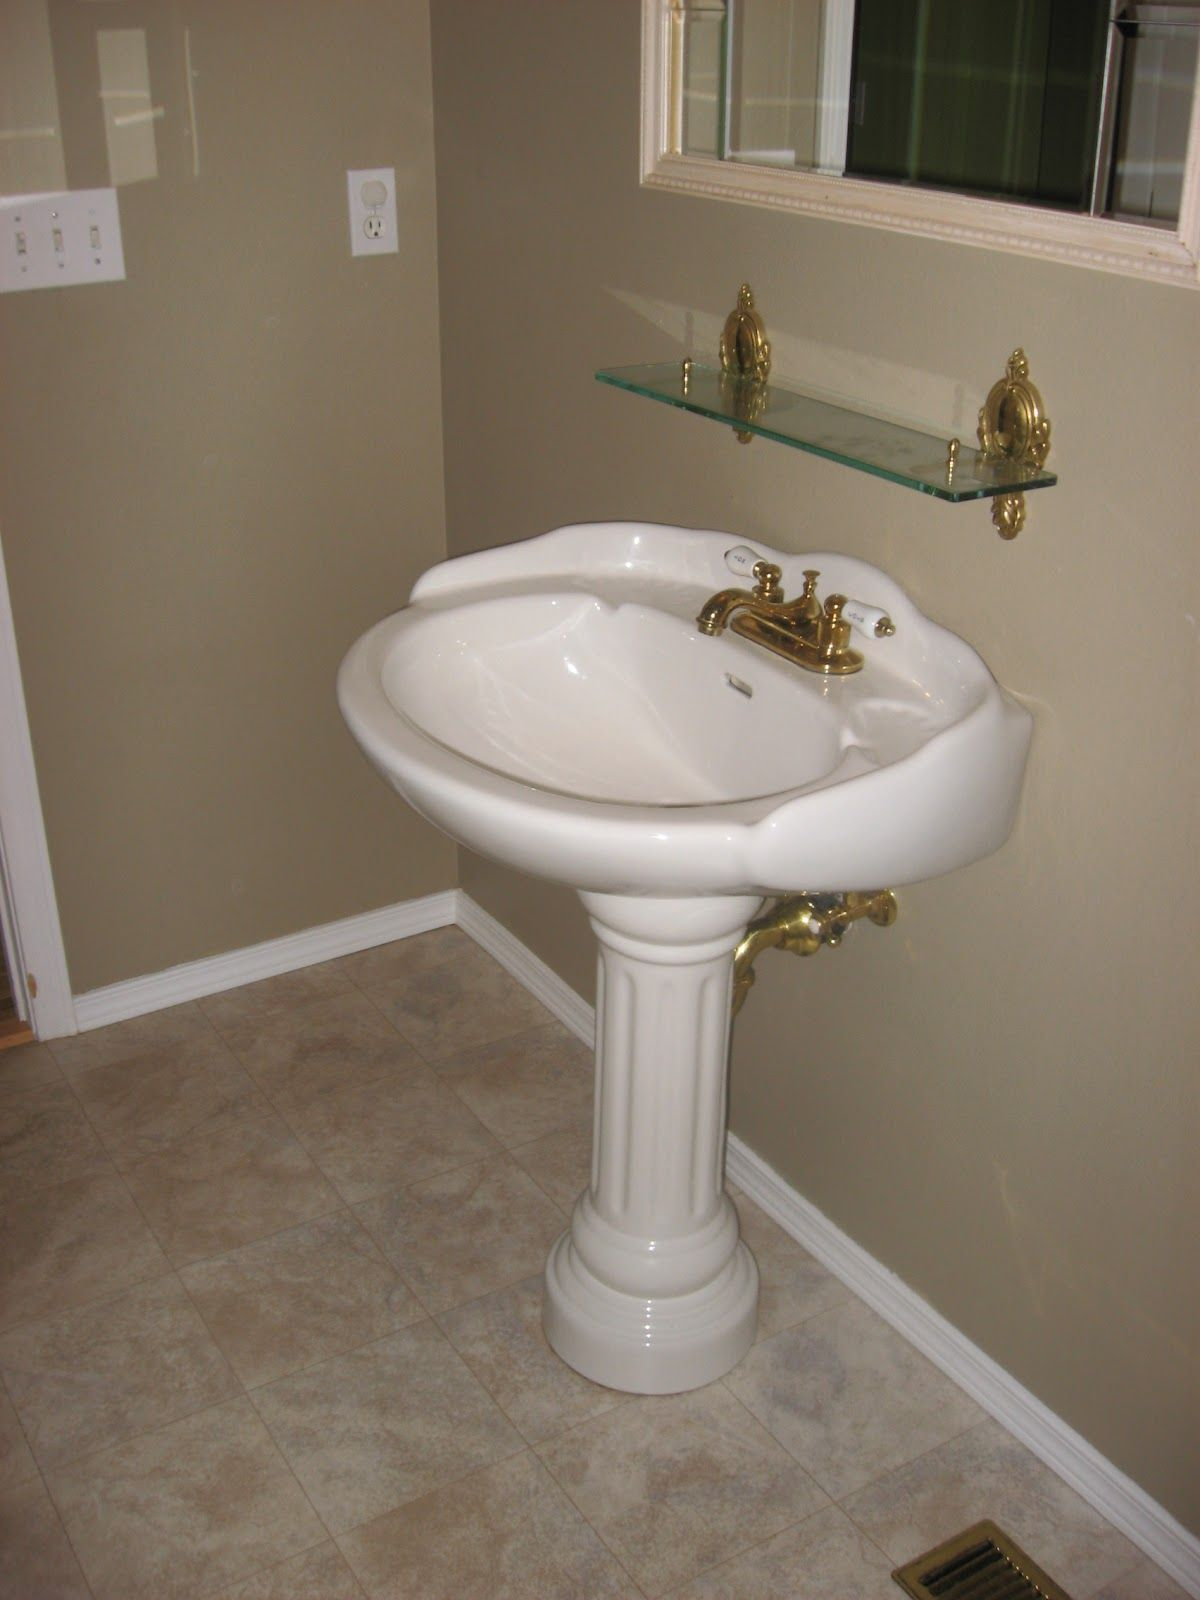 Pedestal Sink Bathroom Design Ideas Bathroom Sinks For Small Spaces  Bathroomsinksforsmall